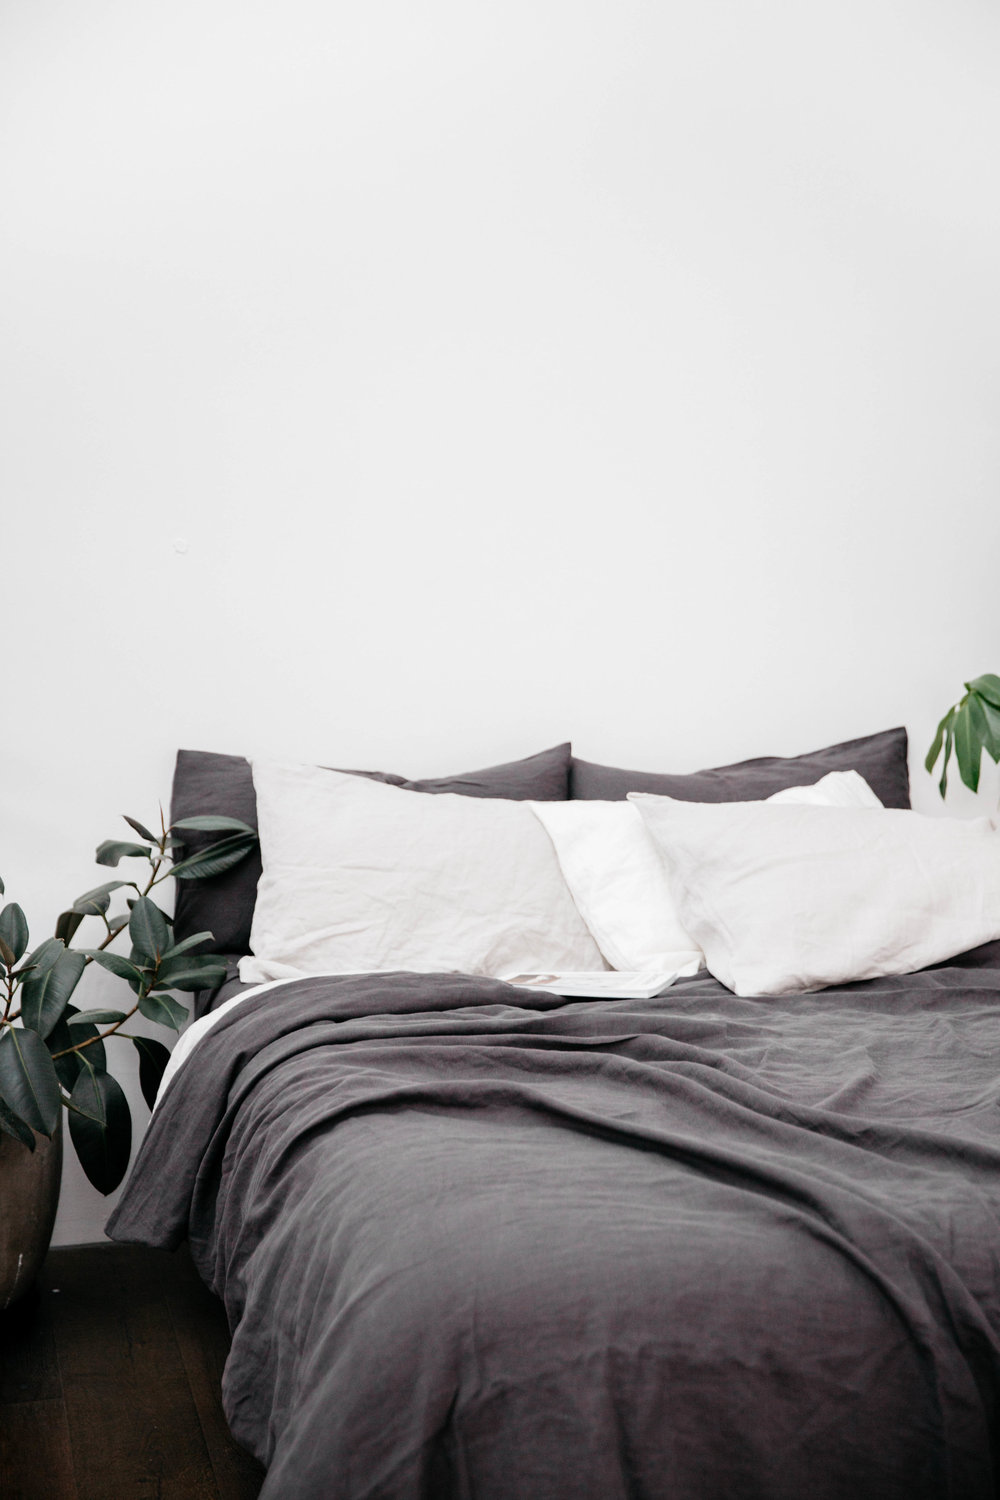 Products shown: Standard pillow cases in Optic White & Dark Grey, Duvet Cover in Dark Grey.